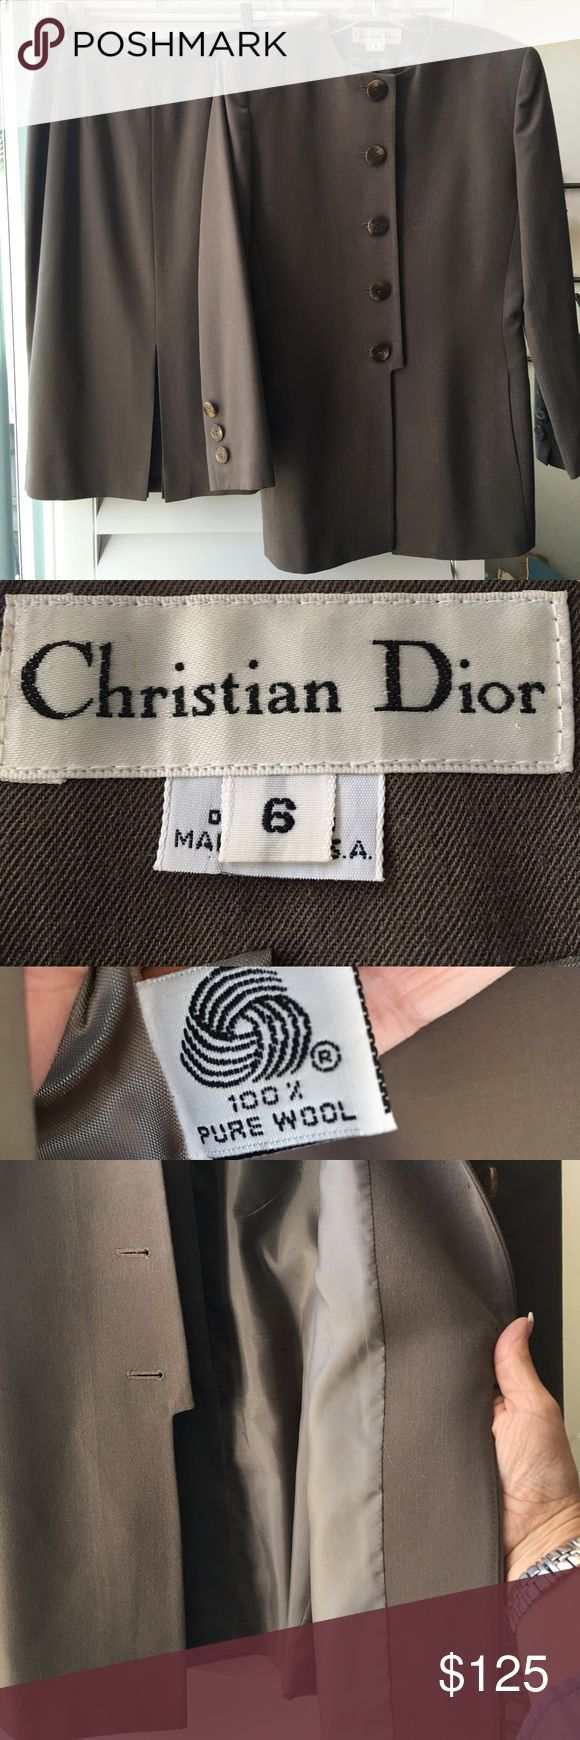 Fabulous CHRISTIAN DIOR Suit! CHRISTIAN DIOR!! Size 6. Gorgeous 100% wool, Made in the 🇺🇸USA🇺🇸, a rich taupe color! Fully lined. Kick pleat is styled in front of the skirt for extra wow.  Worn a couple of times, this suit in beautiful condition! Purchased from the designer salon at Nordstrom. 😍😍😍 Christian Dior Jackets & Coats